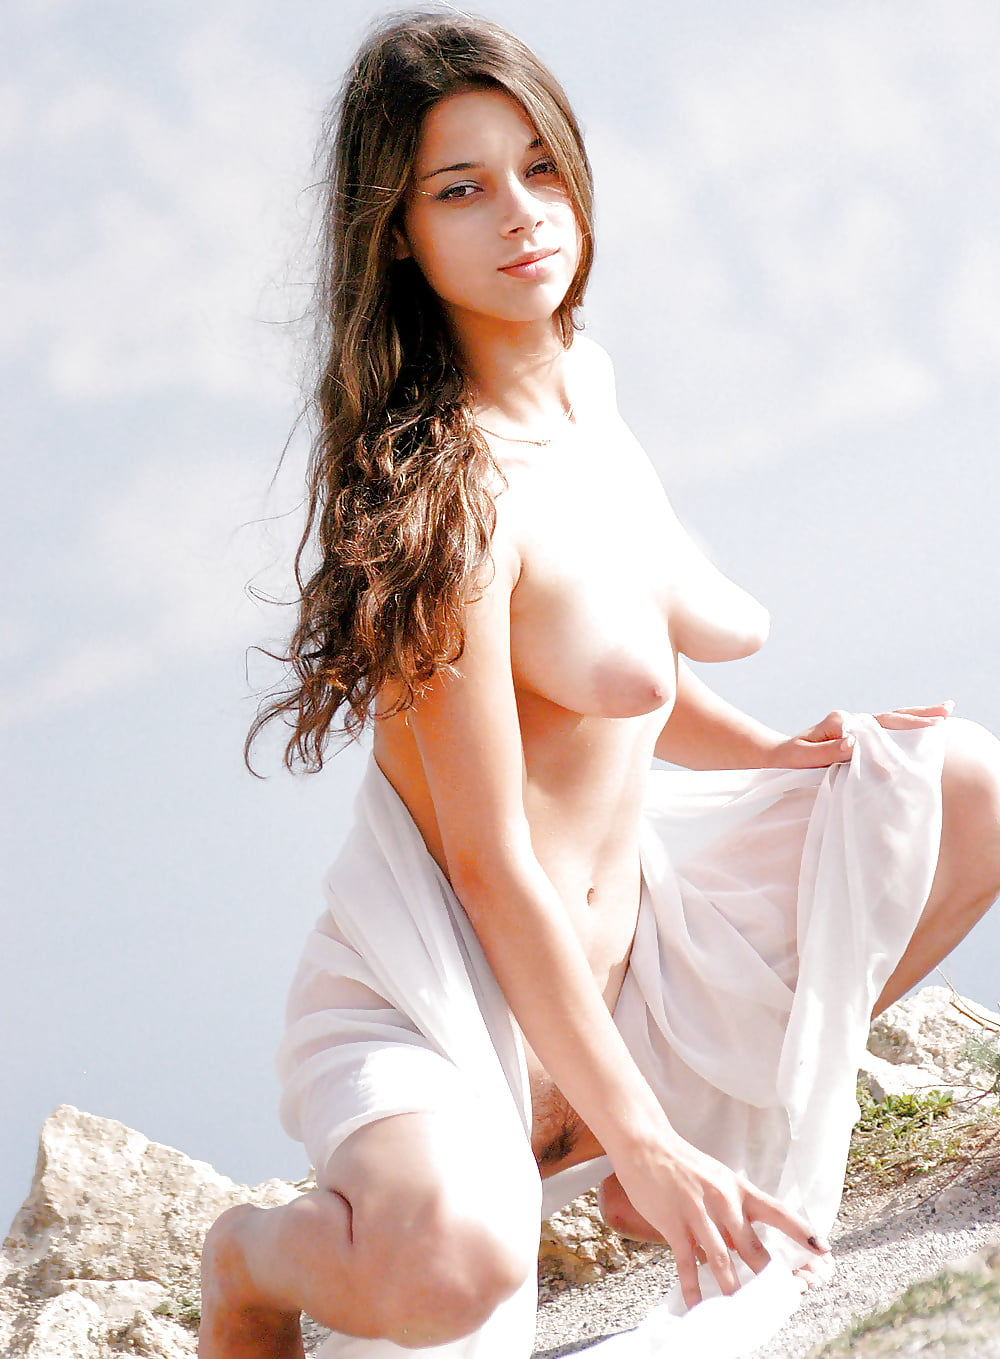 Sexy Lips And Lovely Eyes On The Naked Girl With The Perky Breasts